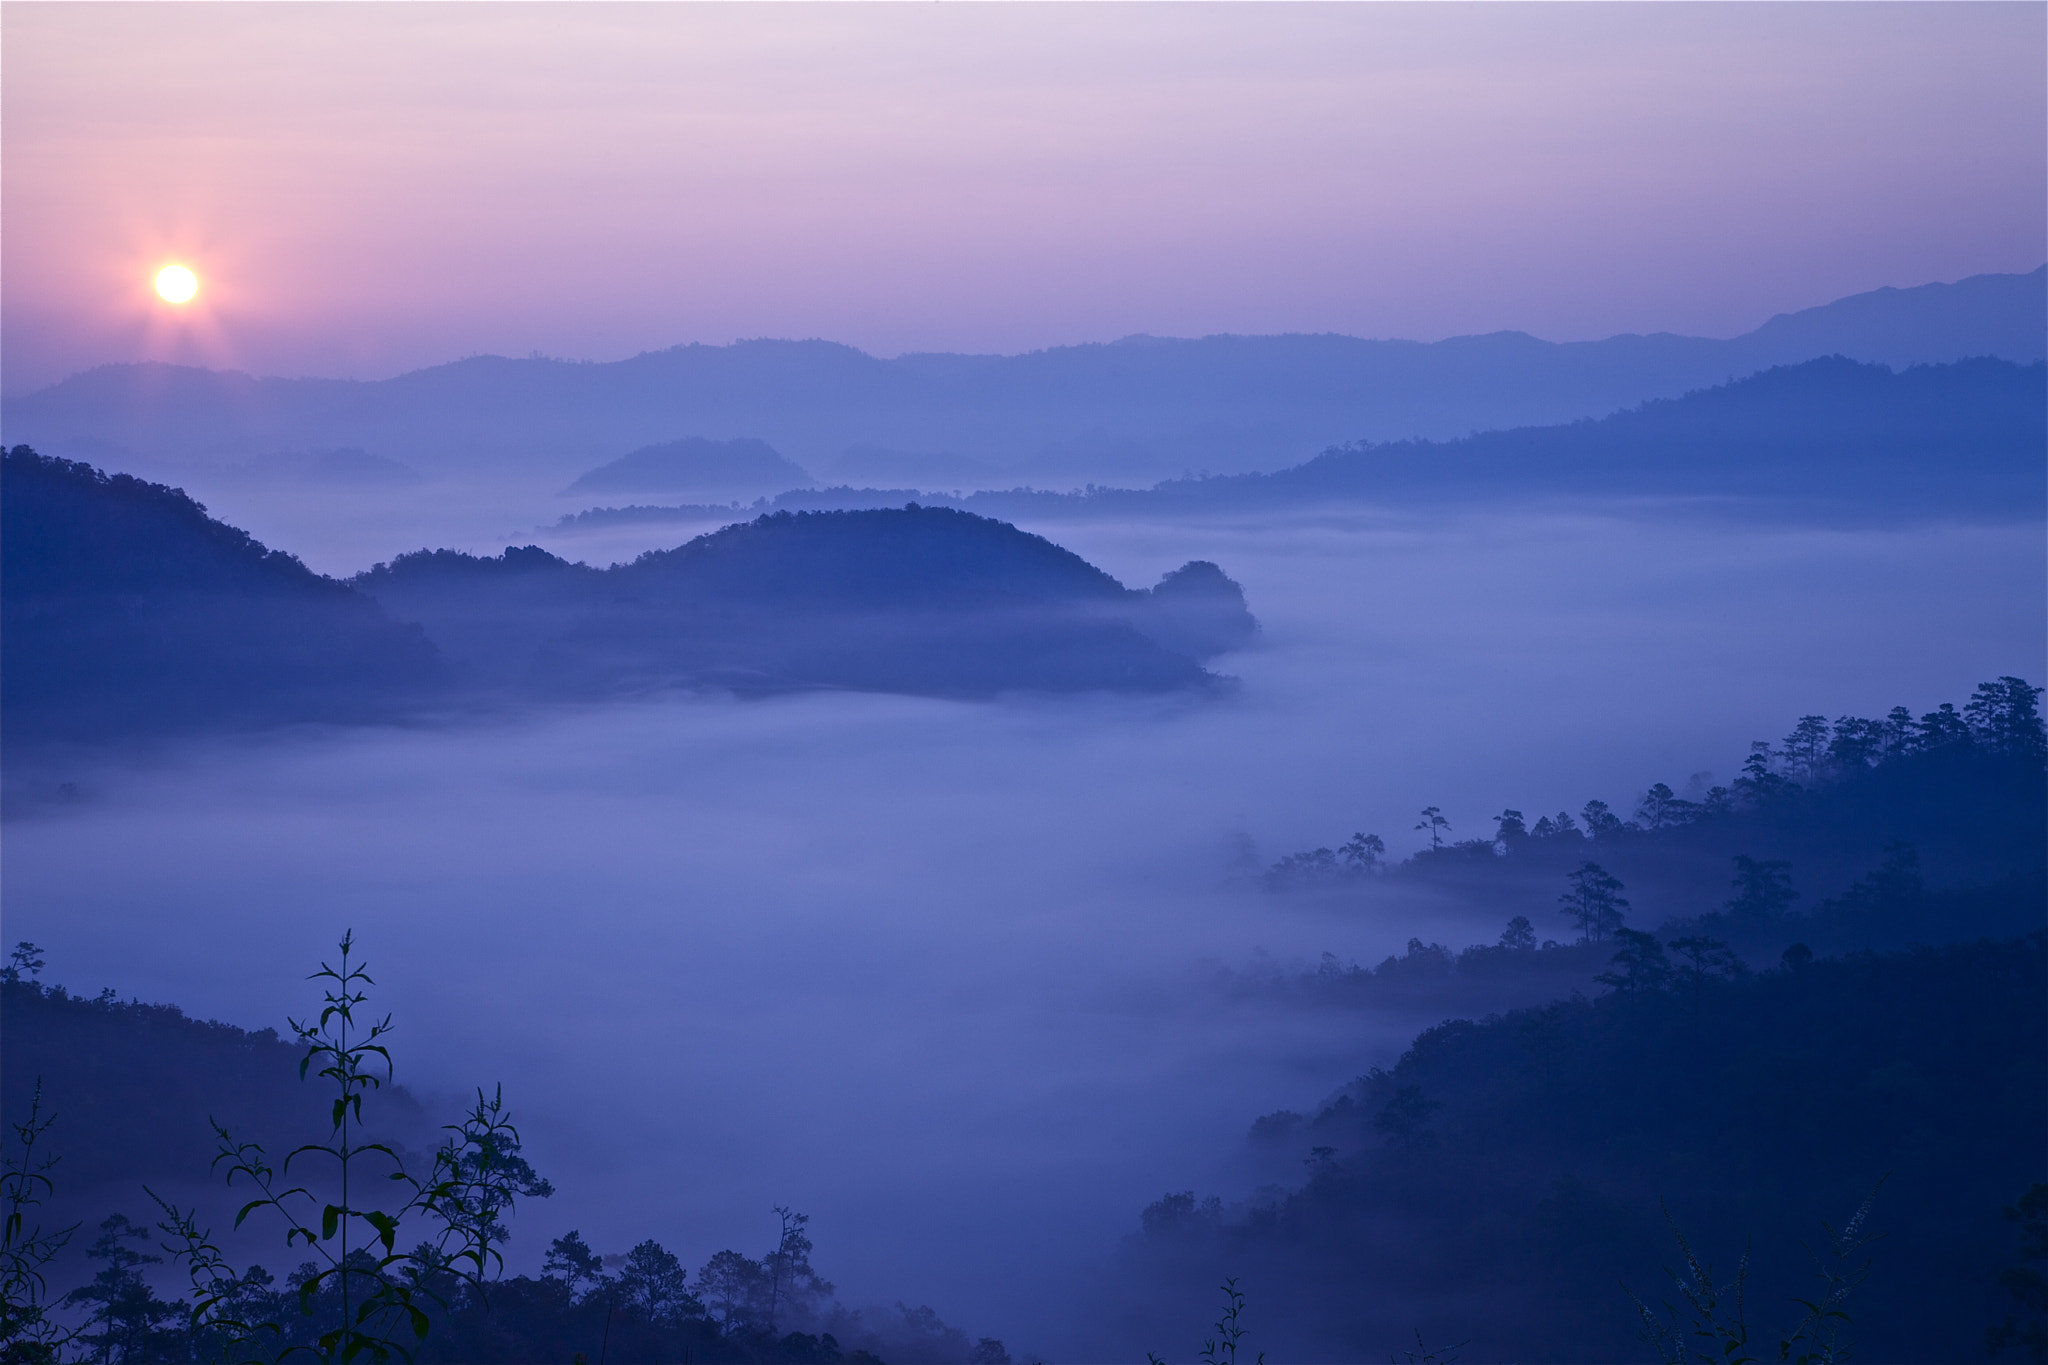 Photograph Thai-Myanmar border by john spies on 500px